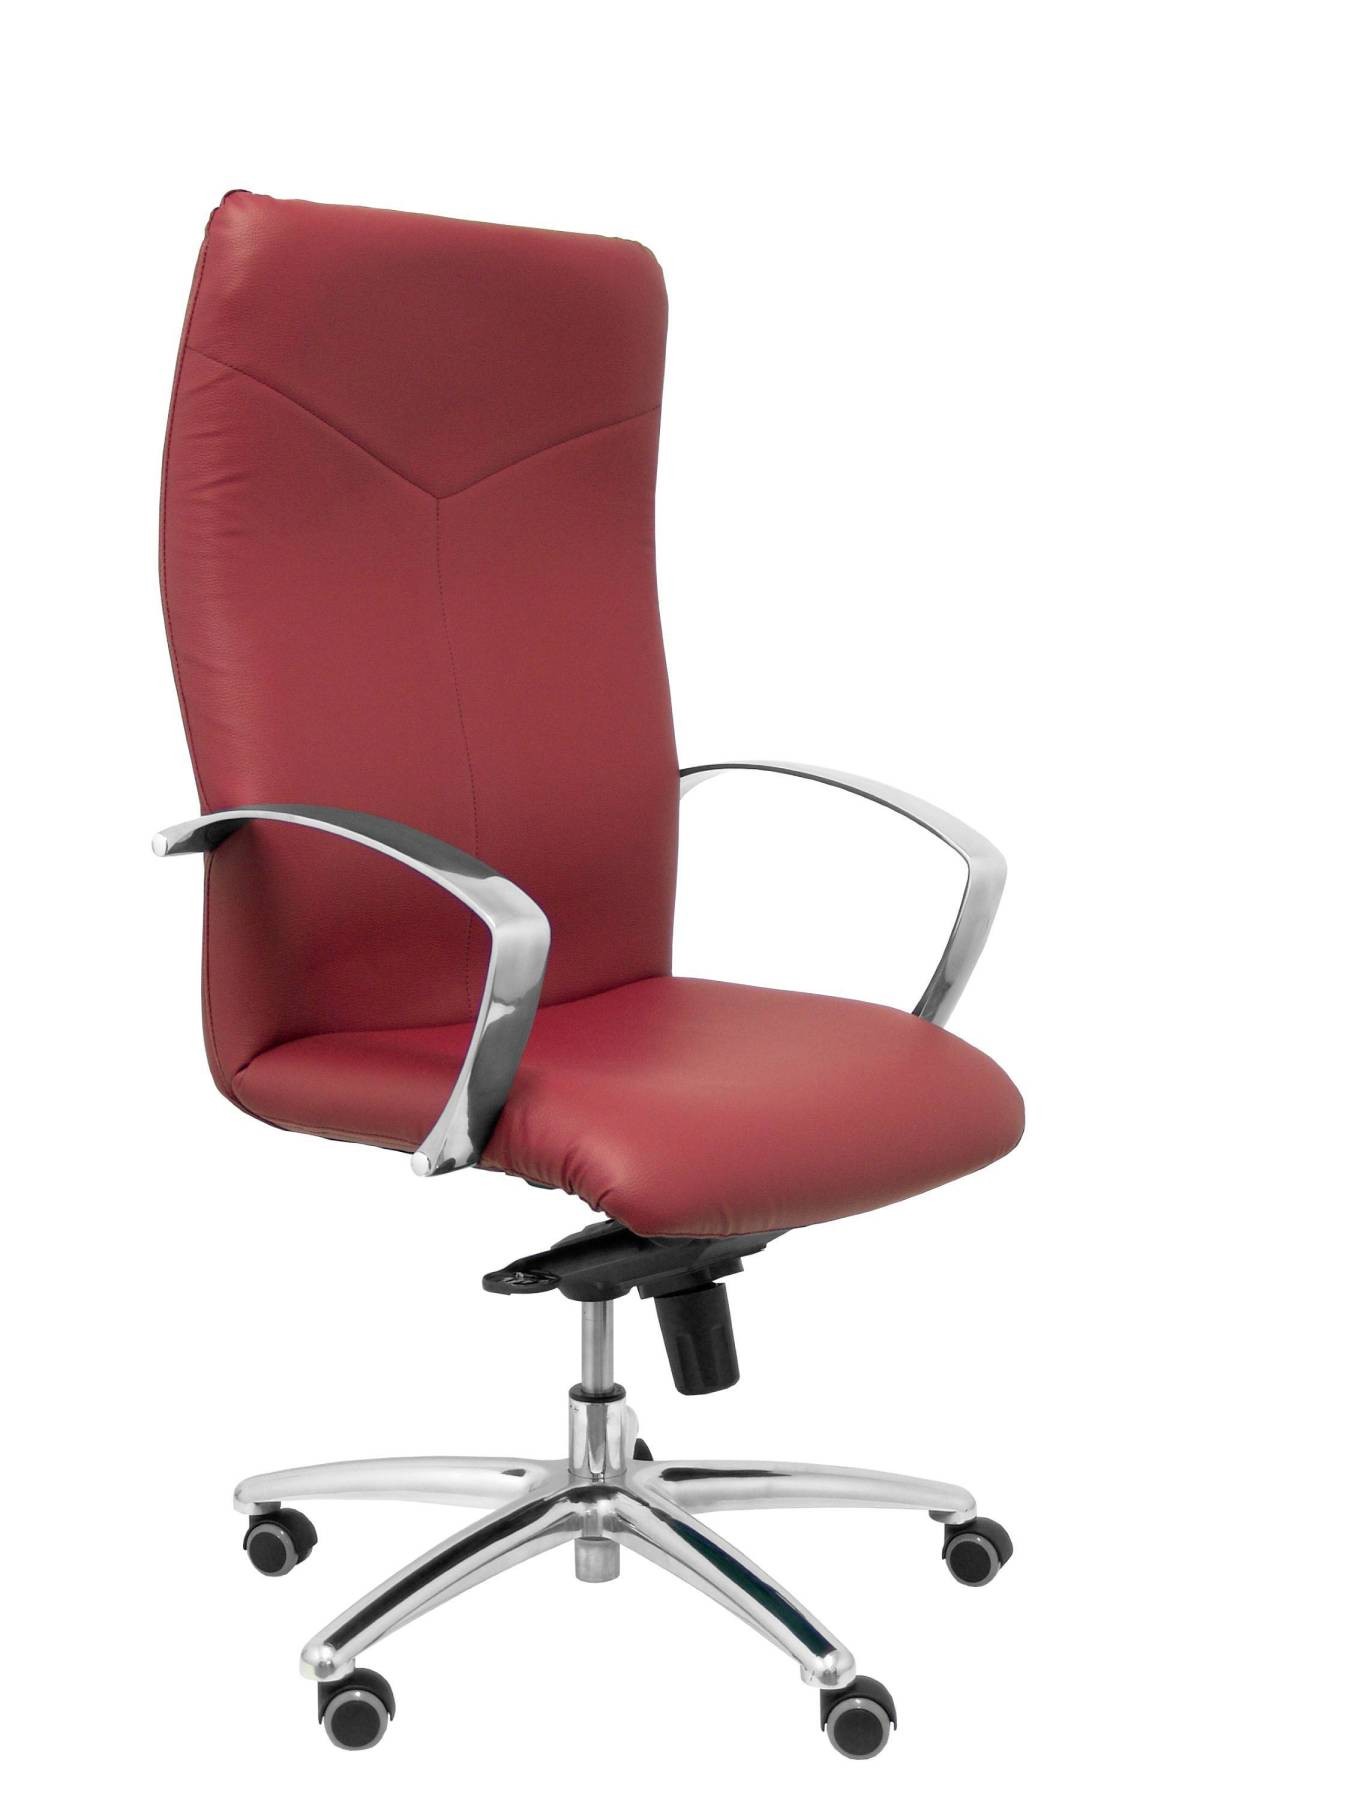 Armchair Ergonomic Steering With Tilting House Mechanism And Dimmable In High Altitude-up Seat And Backstop Upholstered In Simil